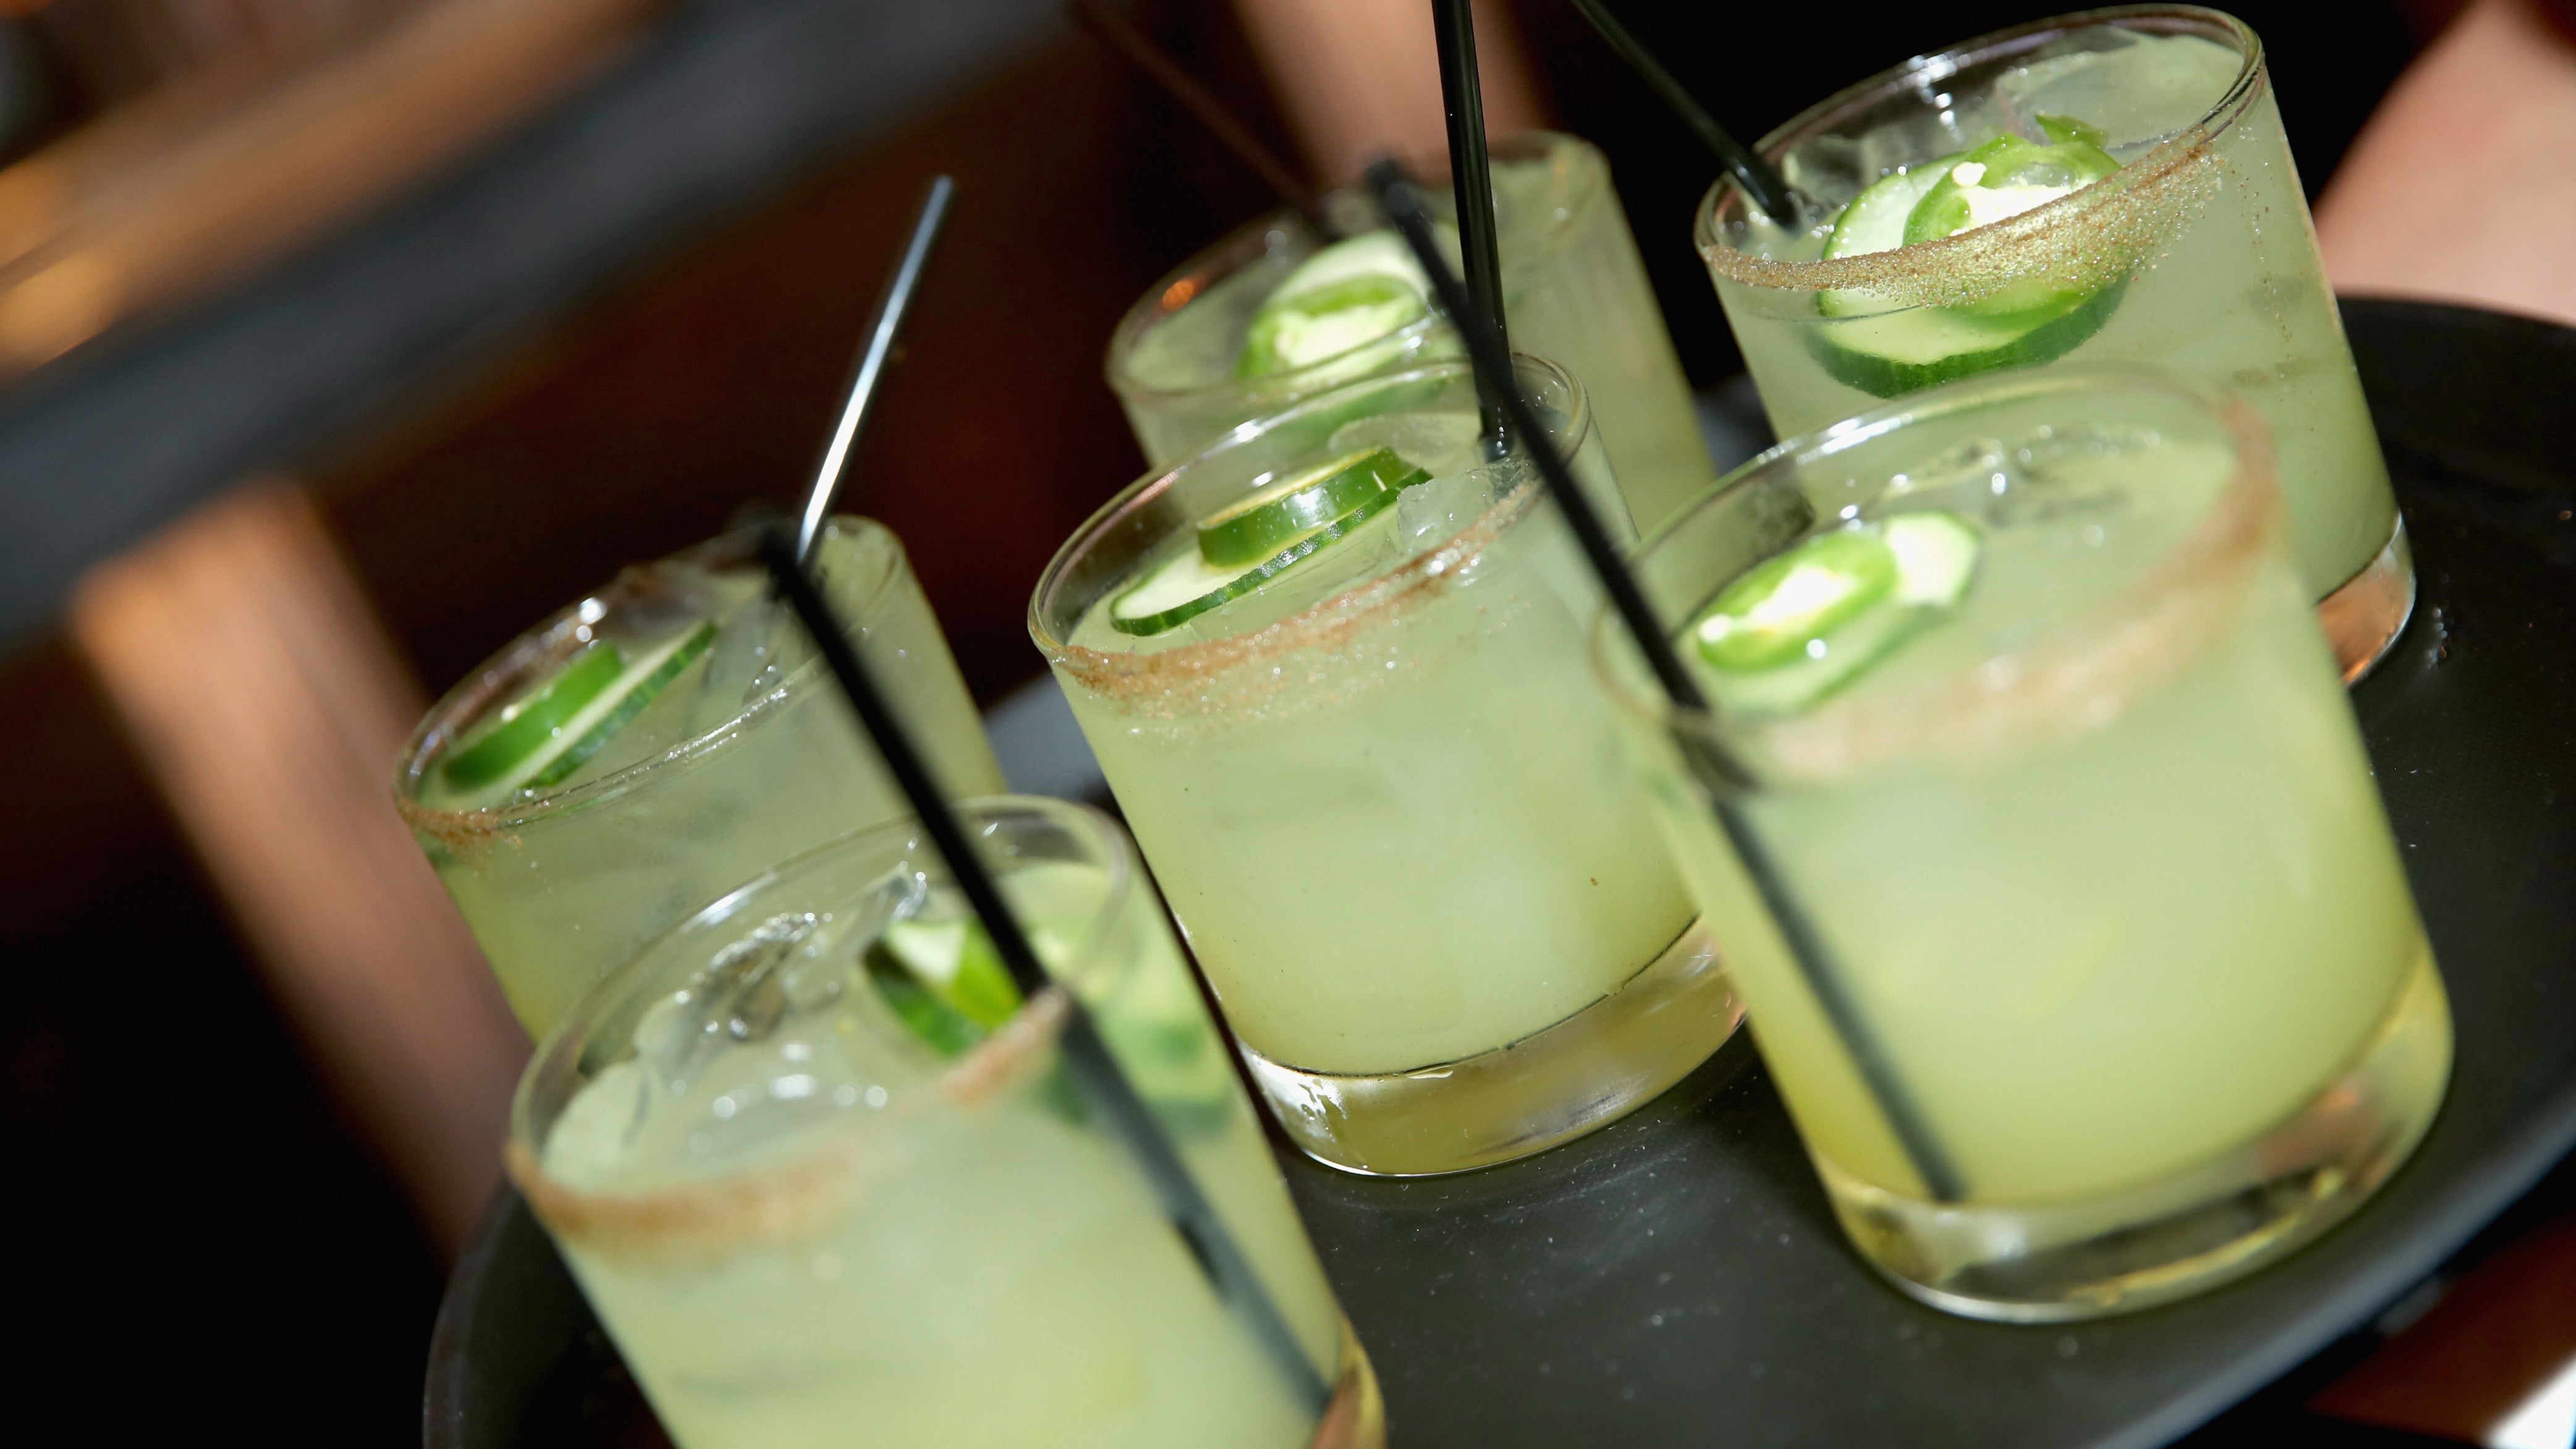 New Study Reports One In Five Americans Are Hurt By Another Person's Drinking Each Year